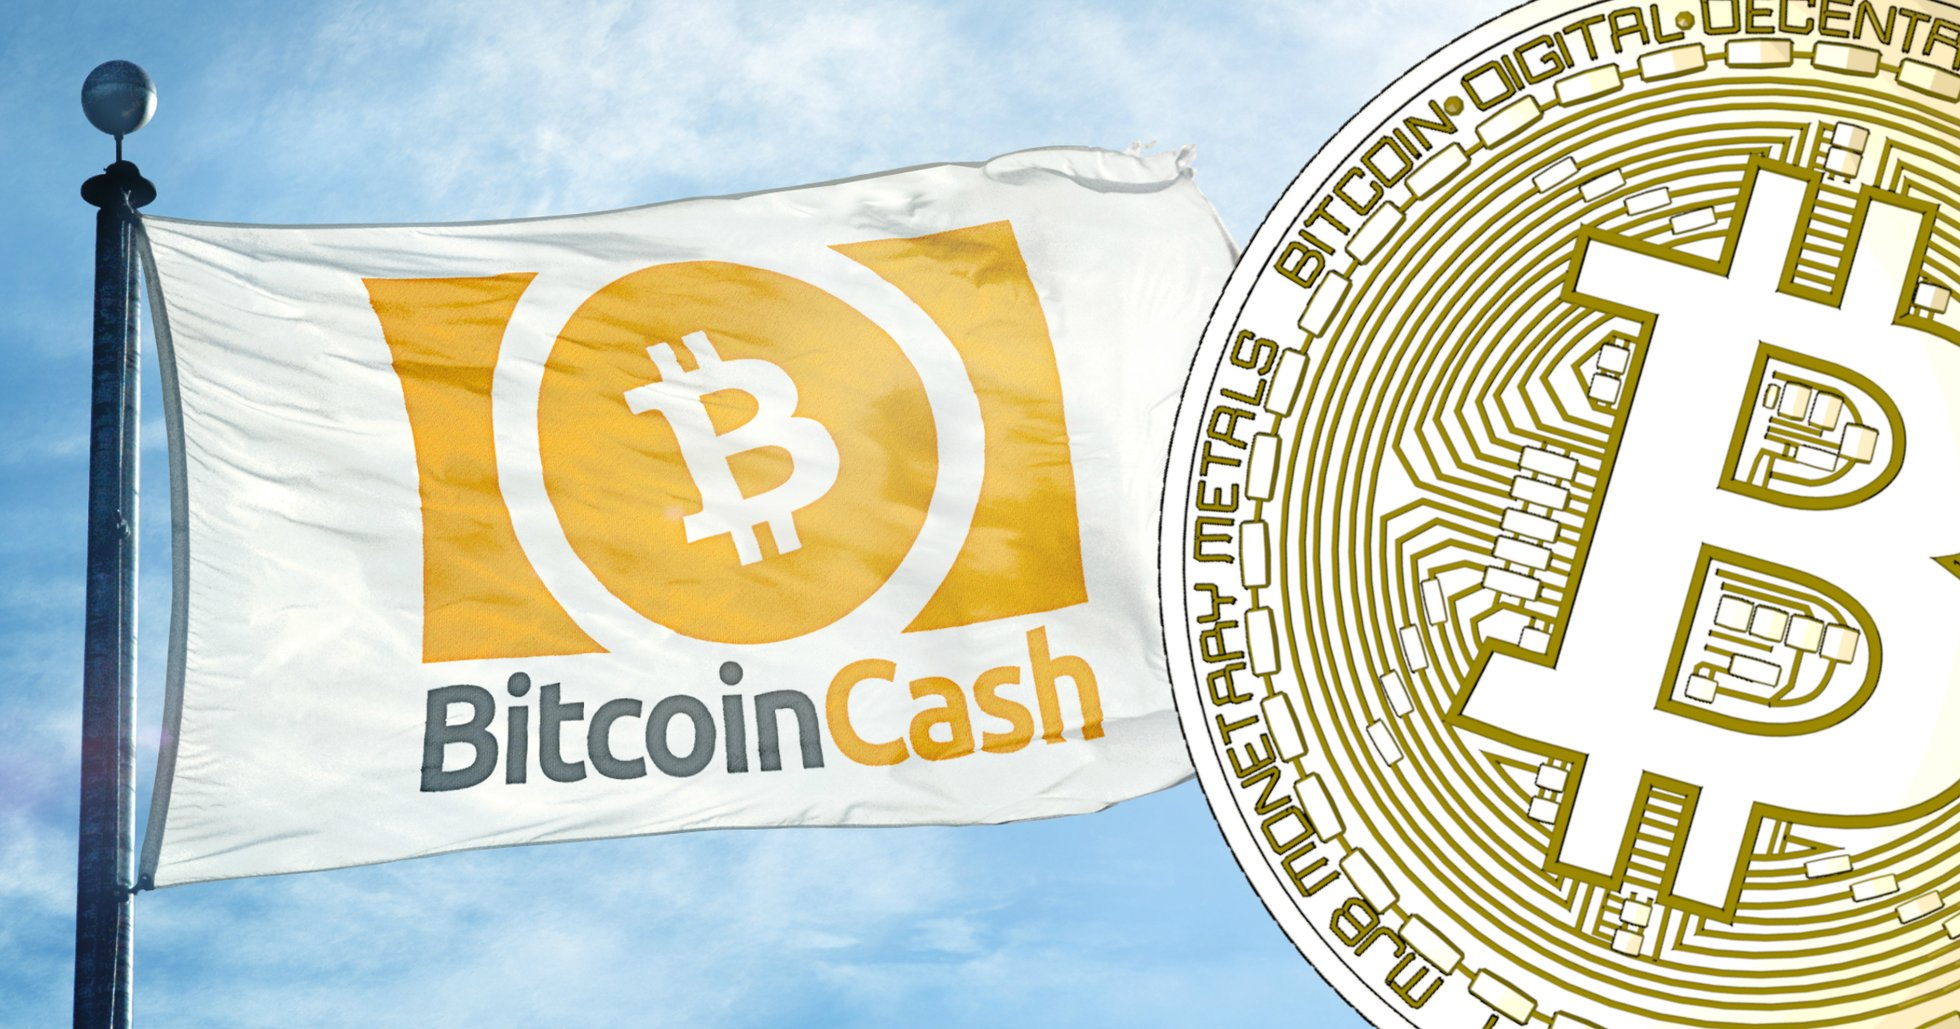 Daily crypto: Bitcoin cash rallies following news about mining giant IPO.